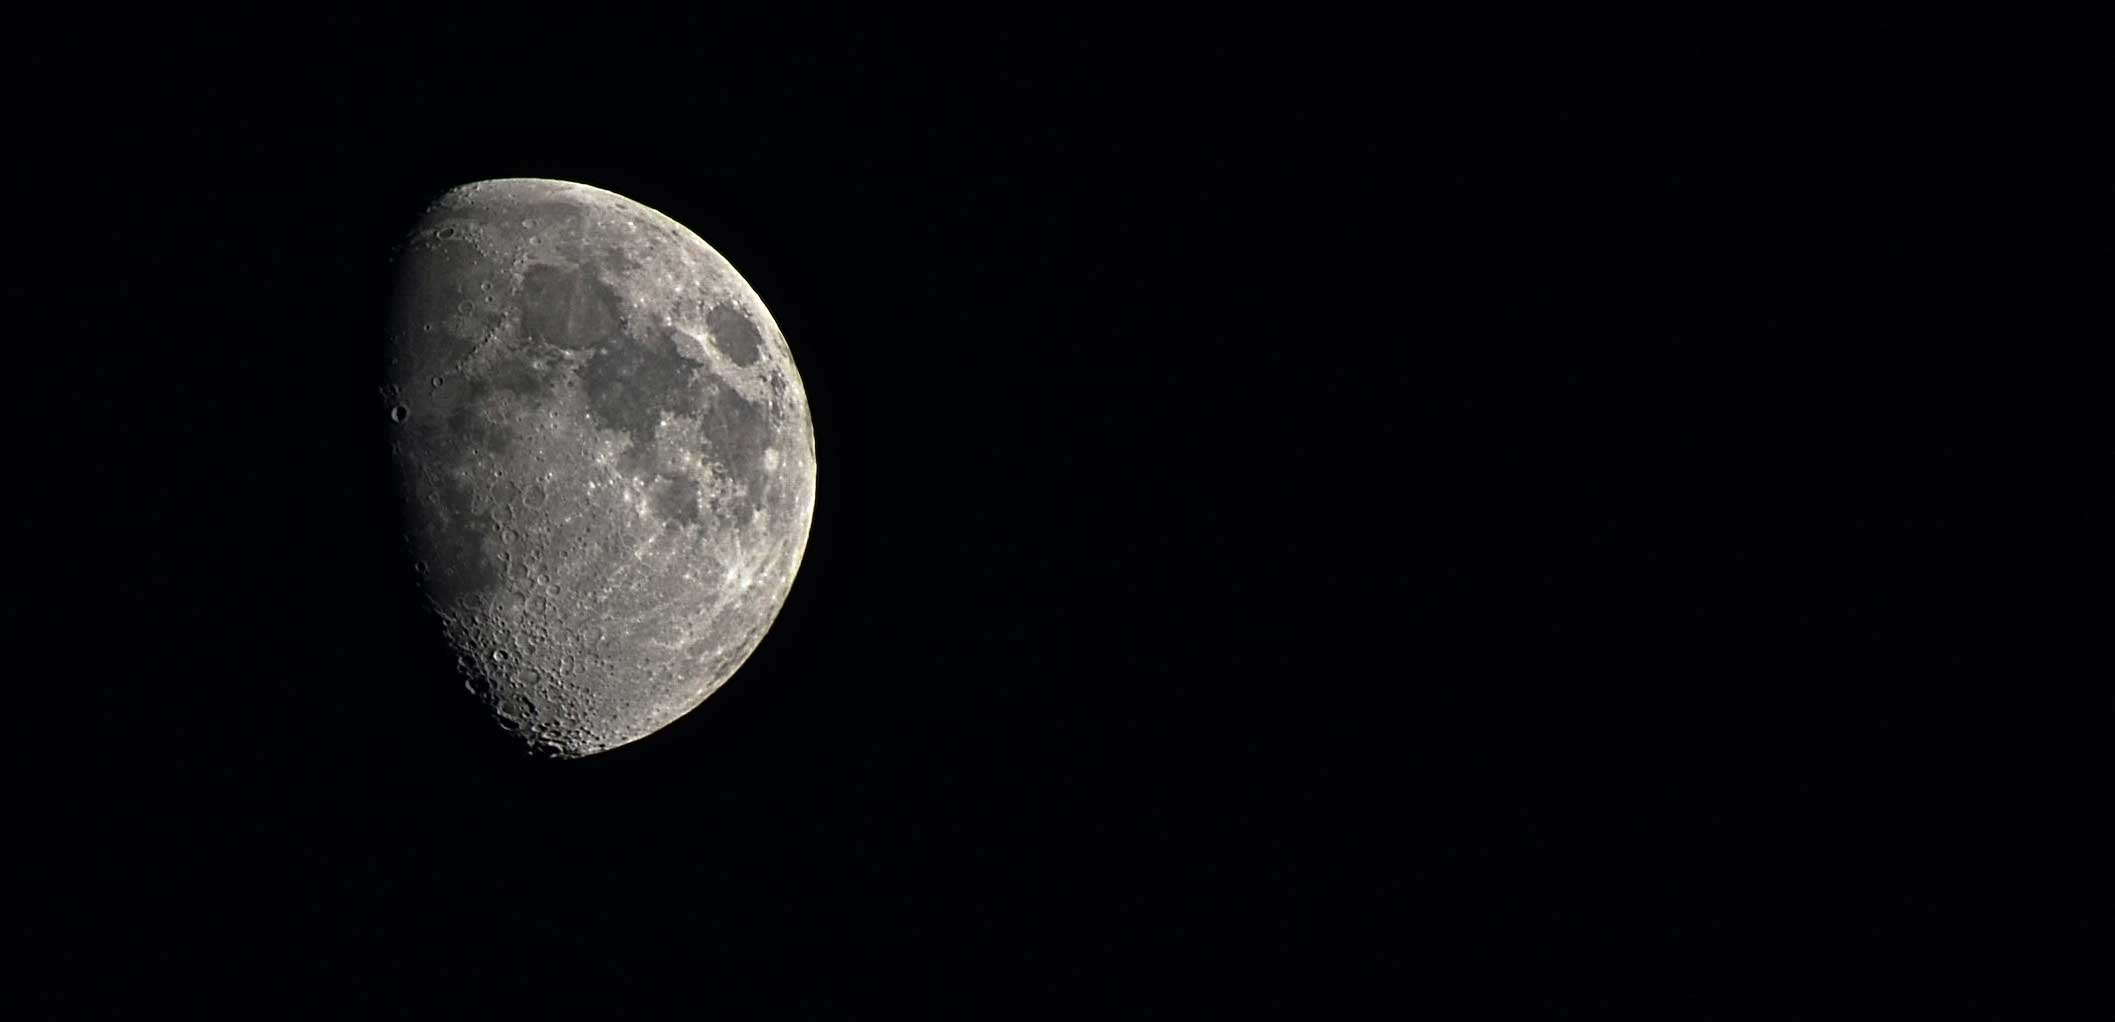 10-15-13_moon_craters